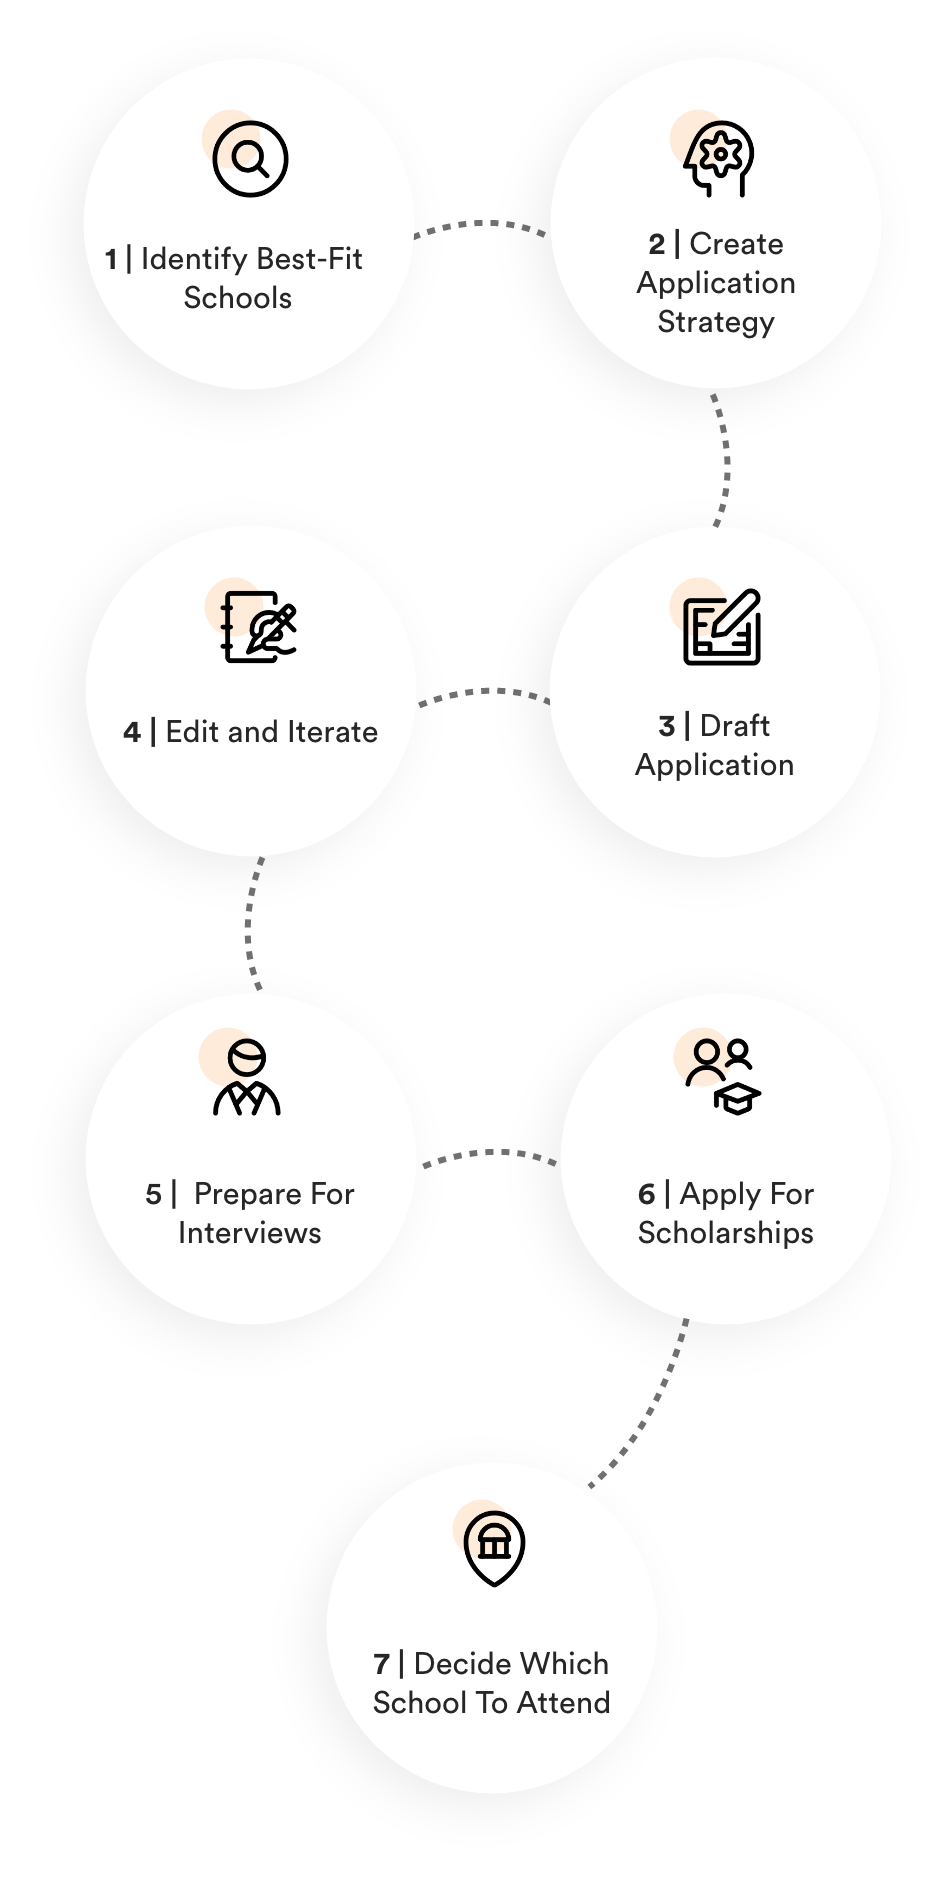 image of the full application process